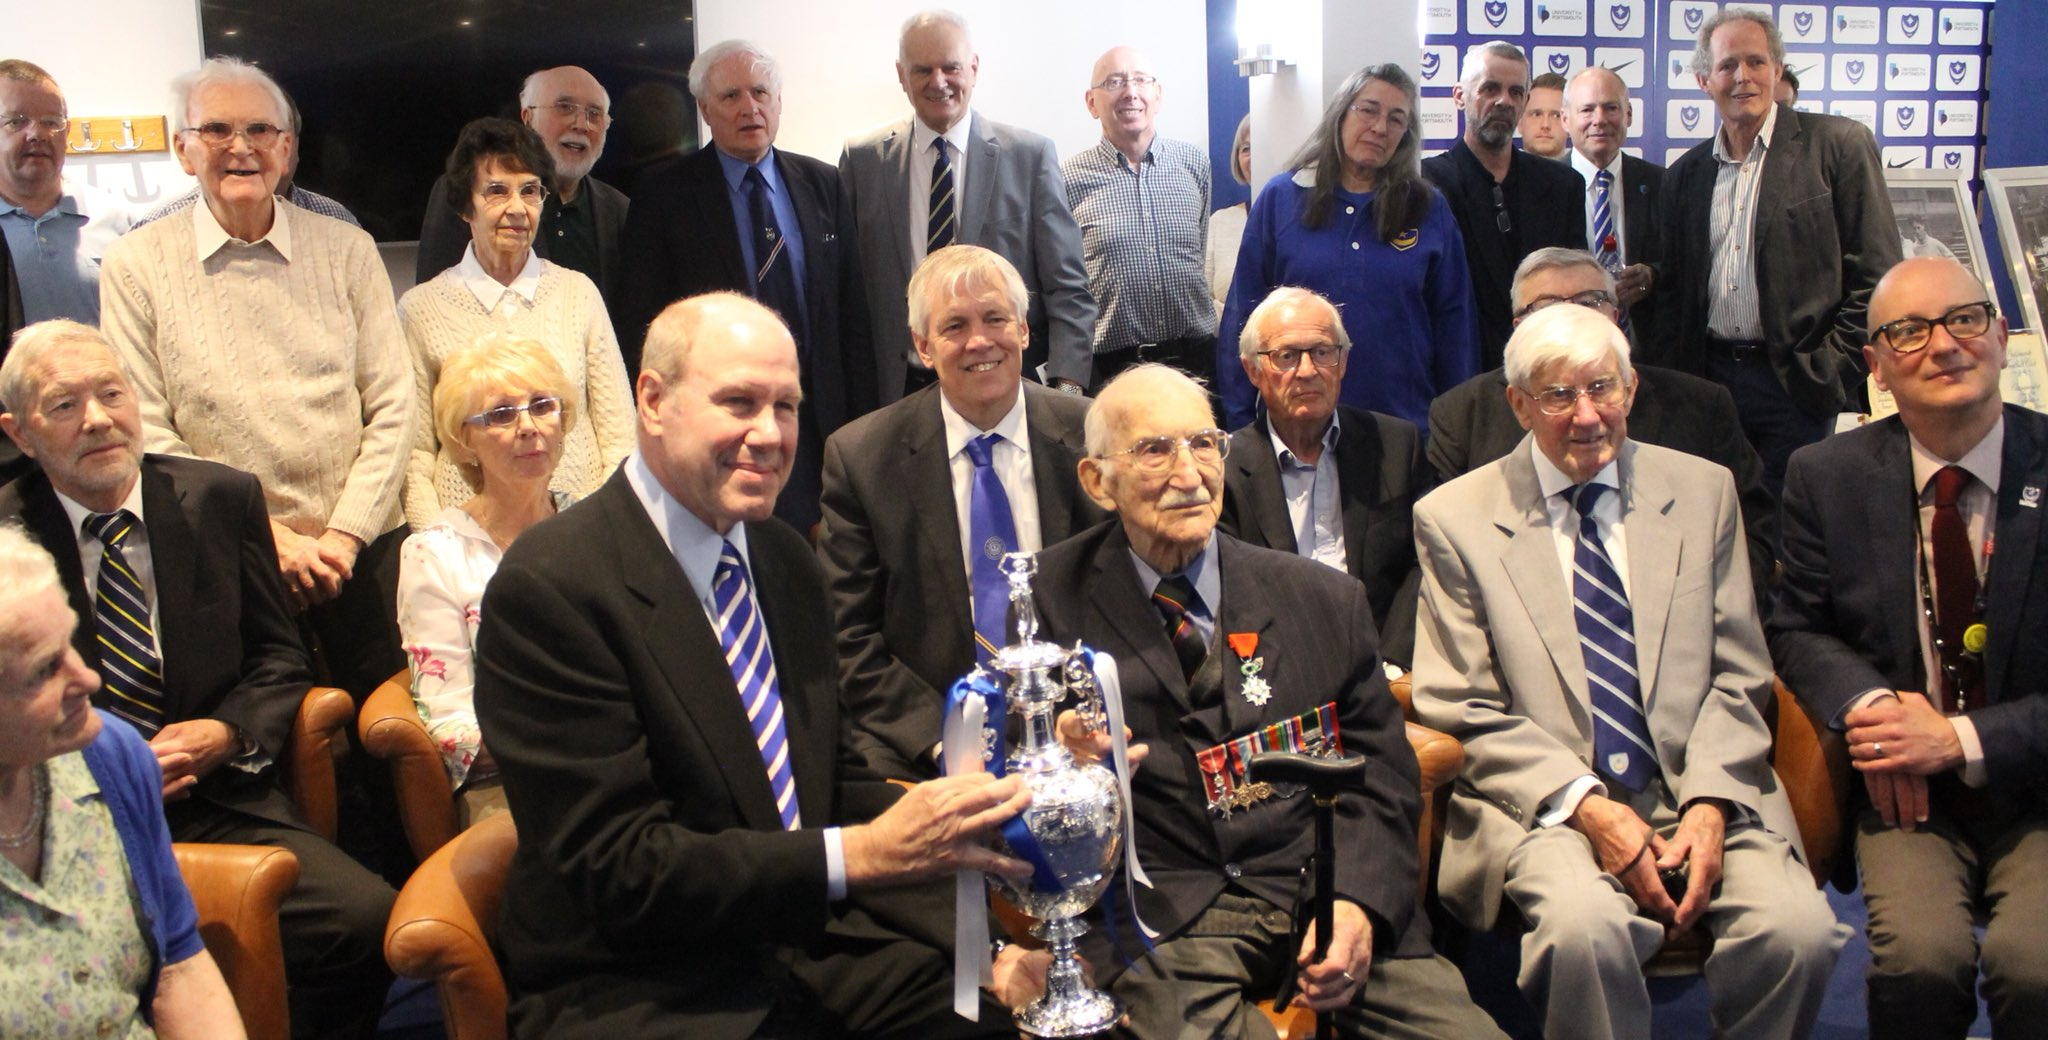 A proud moment for @PompeyHistory as the replica 1948/49 Division 1 trophy is unveiled in the Fratton Park boardroom. Thanks again to all our supporters and volunteers. #Pompey #PompeyHistory https://t.co/bxc1MXN06t